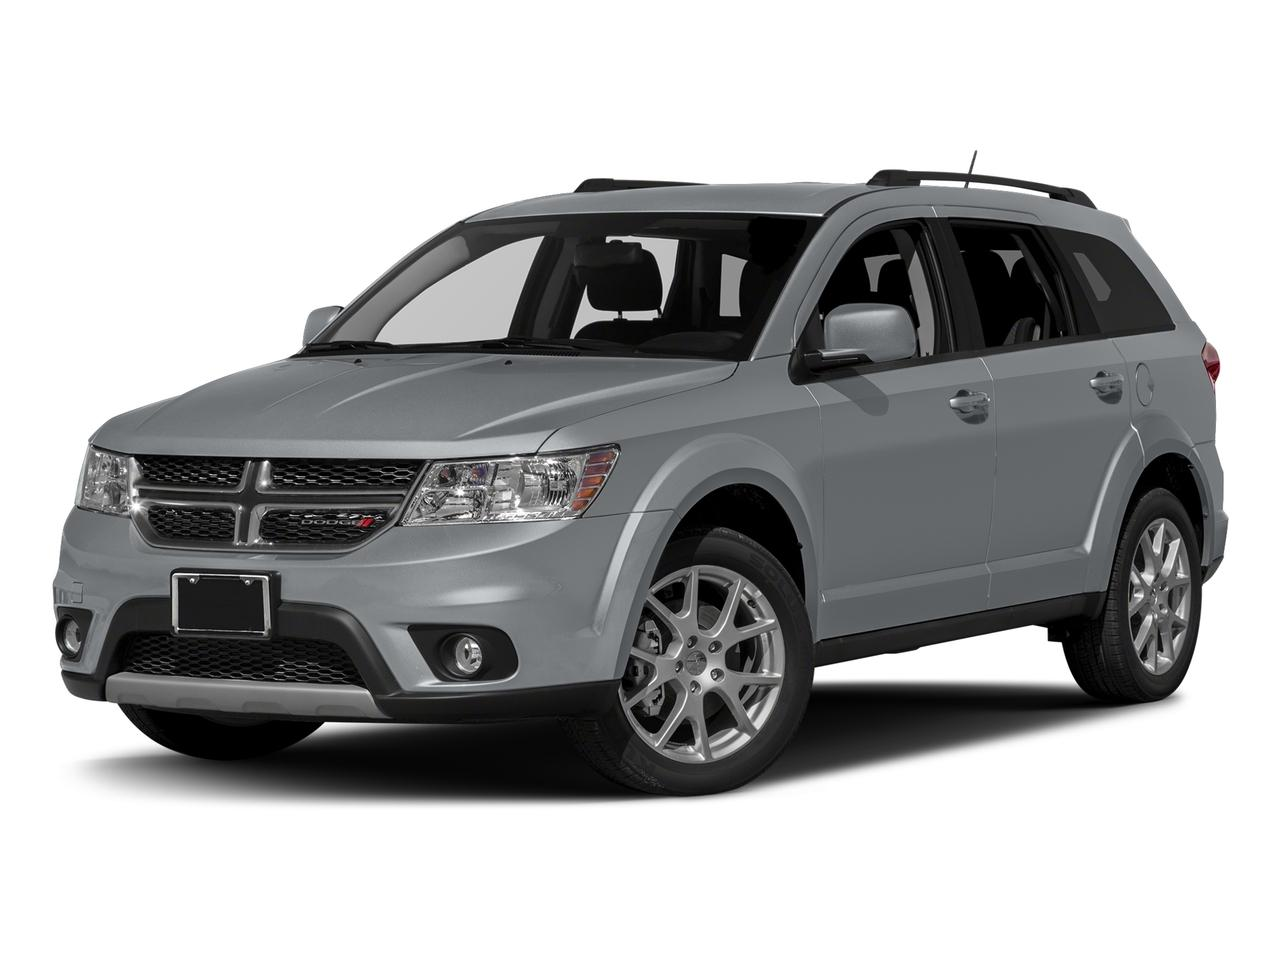 2017 Dodge Journey Vehicle Photo in Portland, OR 97225